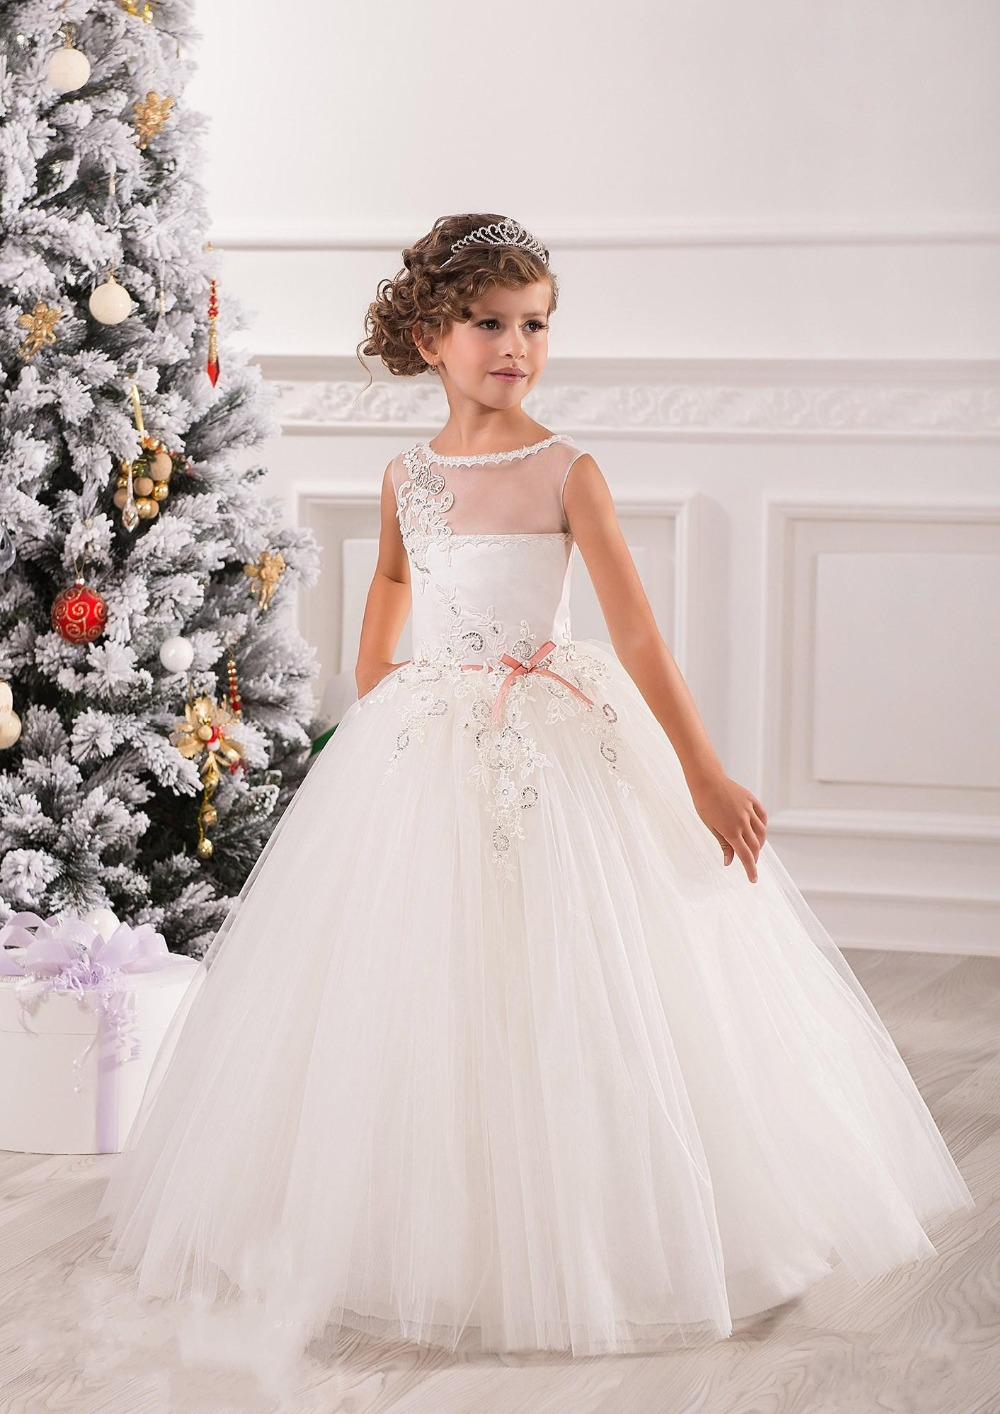 Elegant white lace ball gowns tulle flower girl dresses for Girls dresses for a wedding